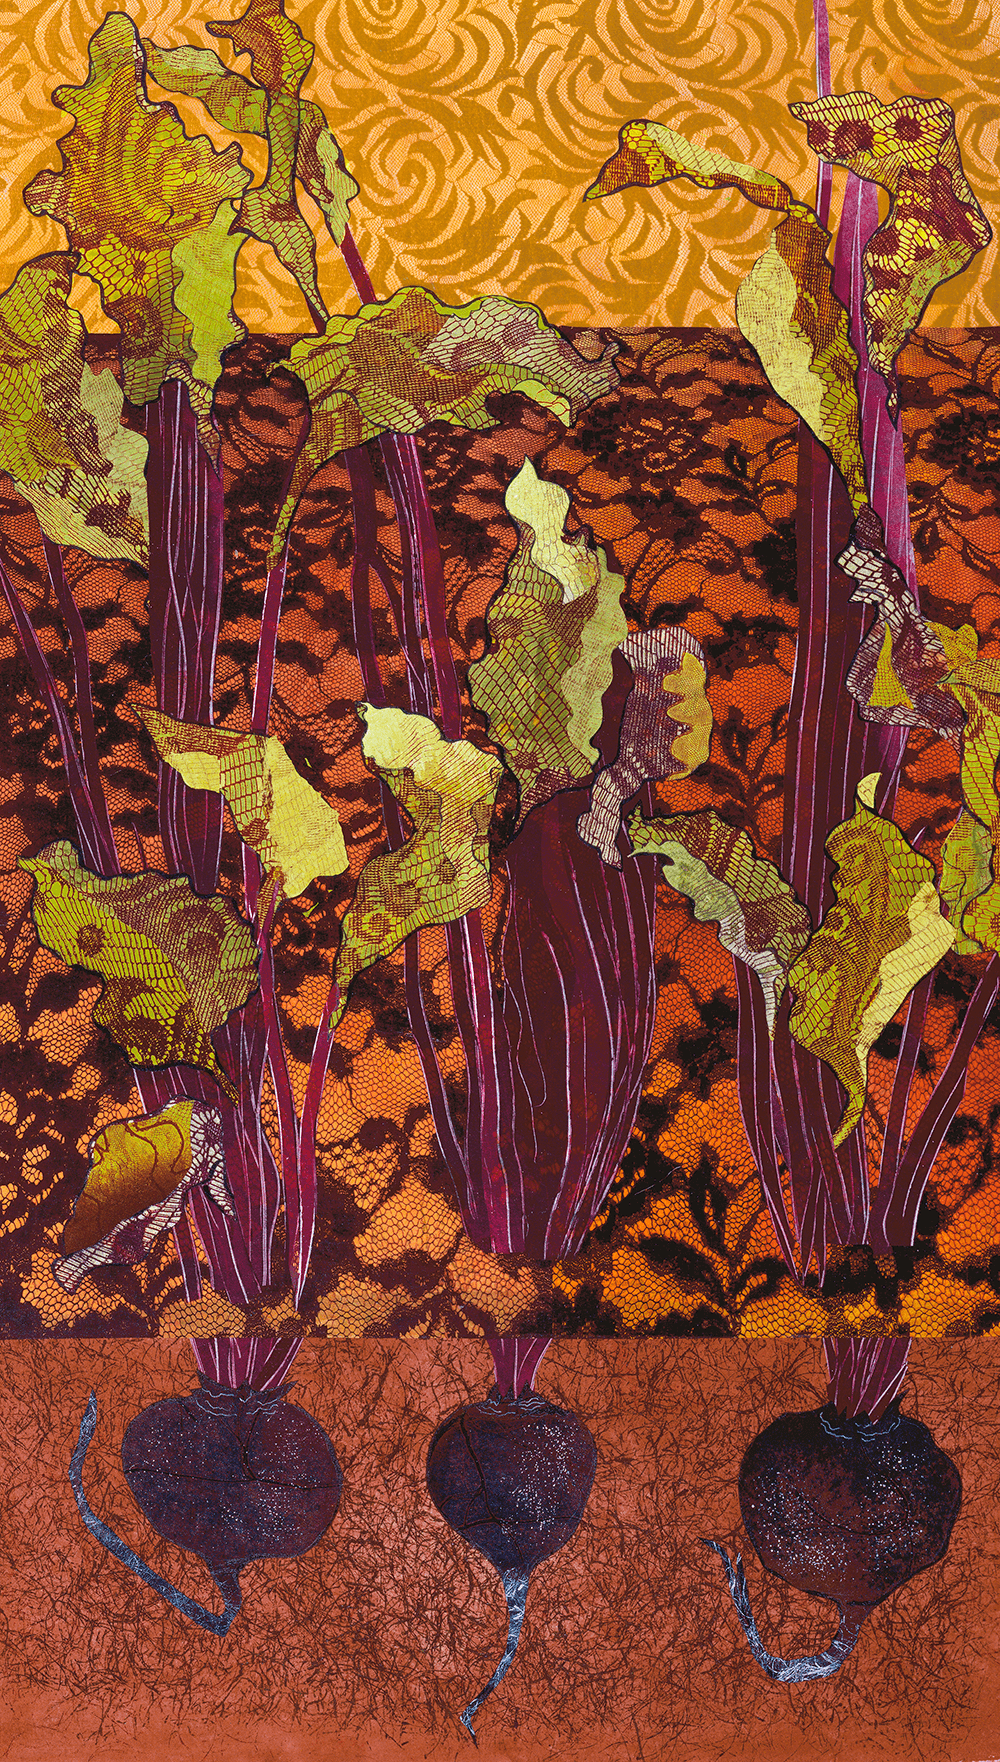 Beets 16 x 28 inches